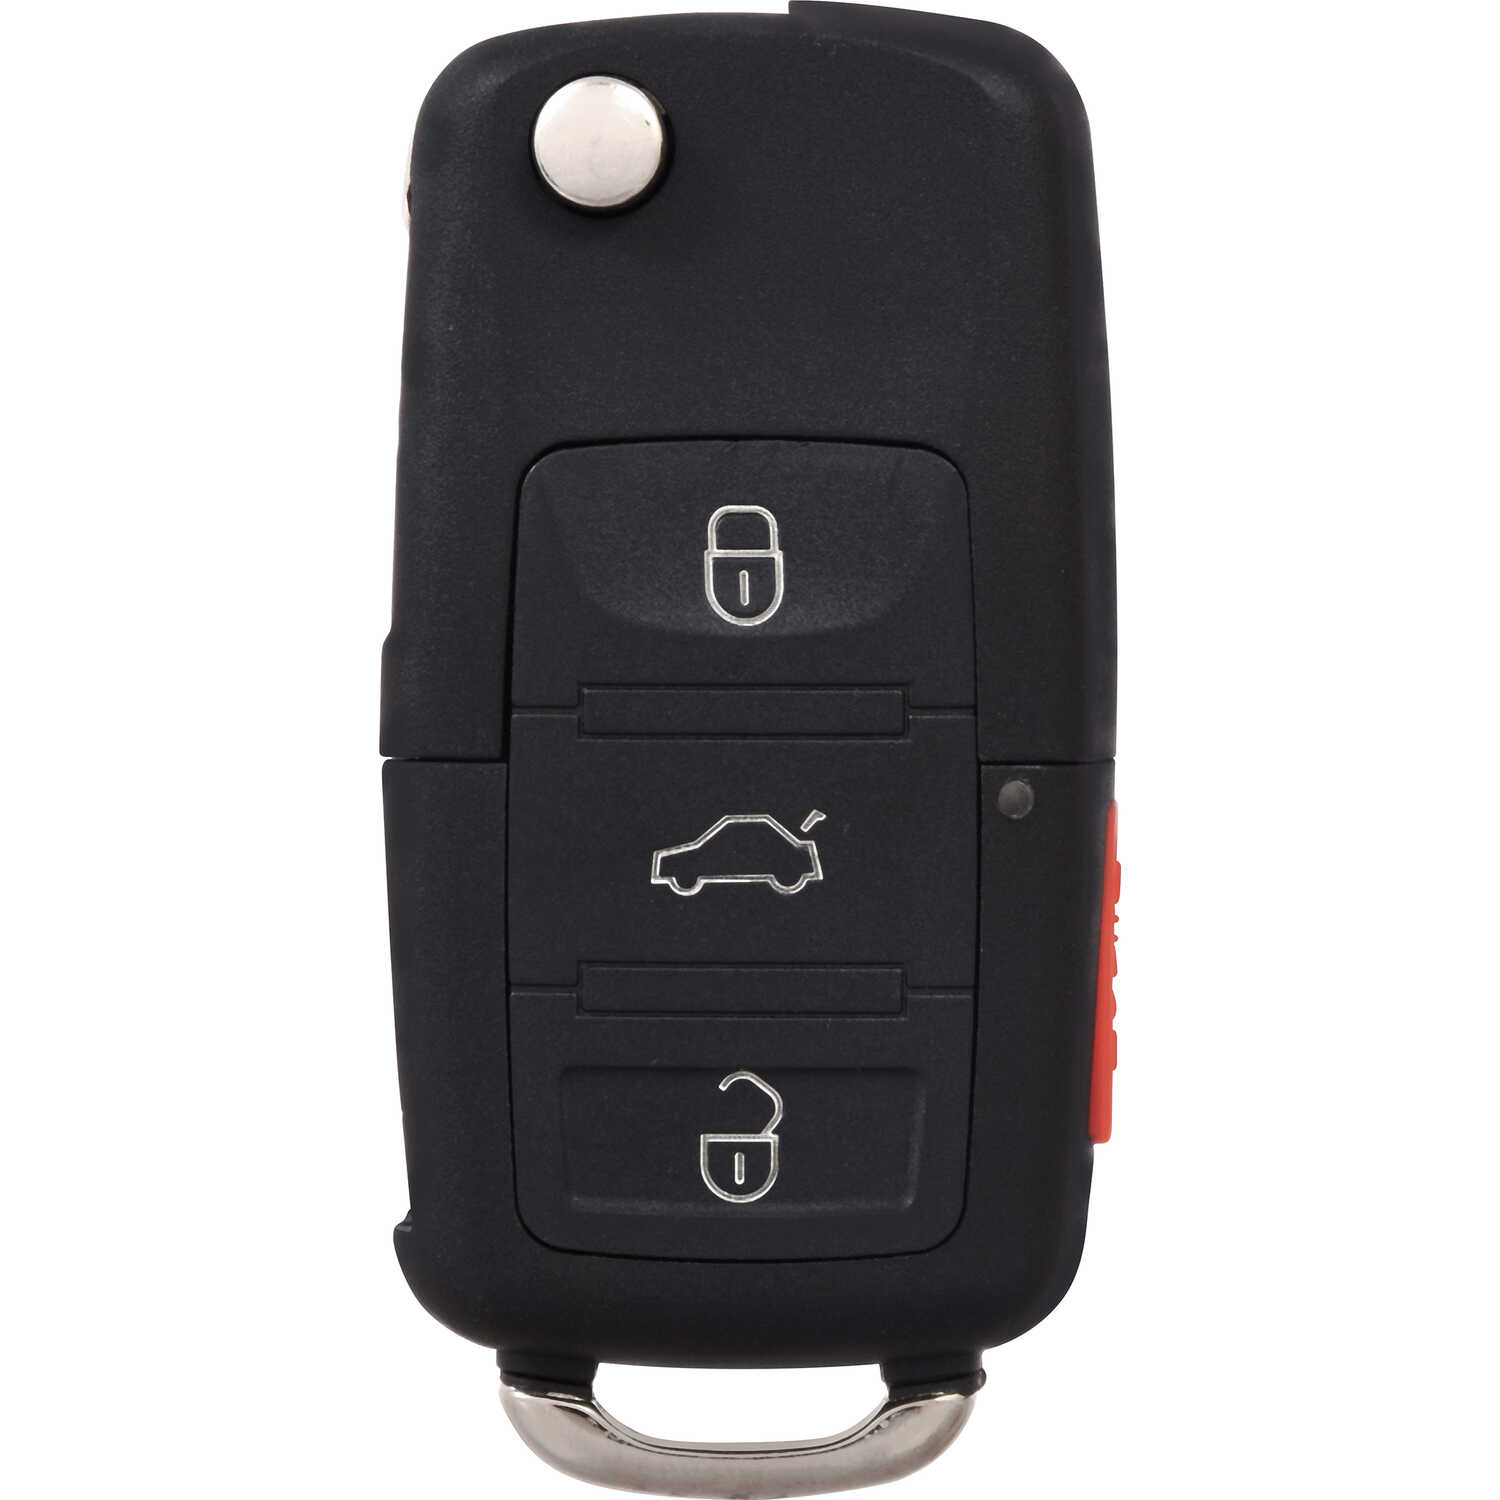 Duracell  Renewal KitAdvanced Remote  Automotive  Replacement Key  VW 1J0-959-753-AM High Security F